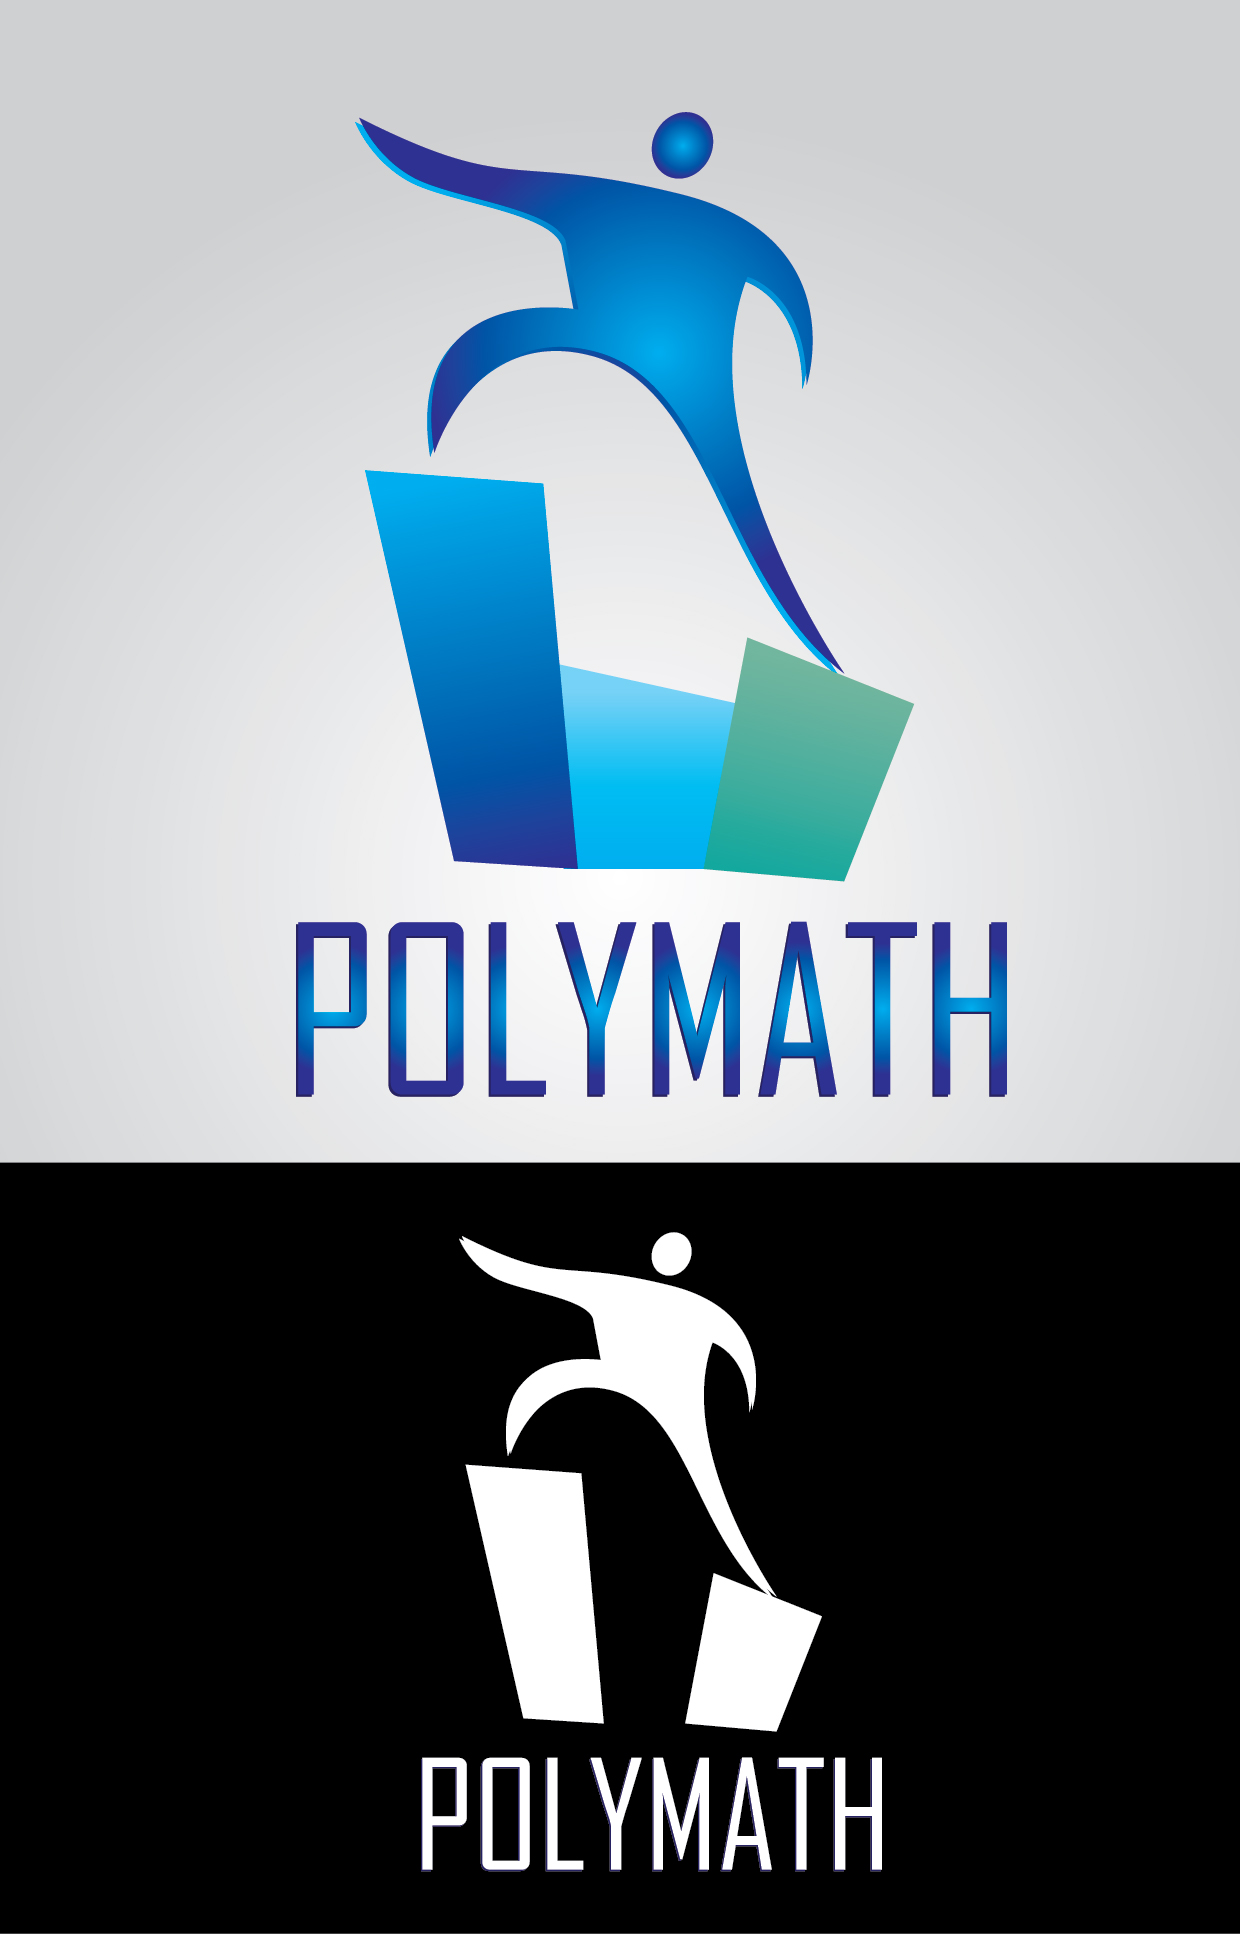 Logo Design by mediaproductionart - Entry No. 18 in the Logo Design Contest Imaginative Logo Design for Polymath.